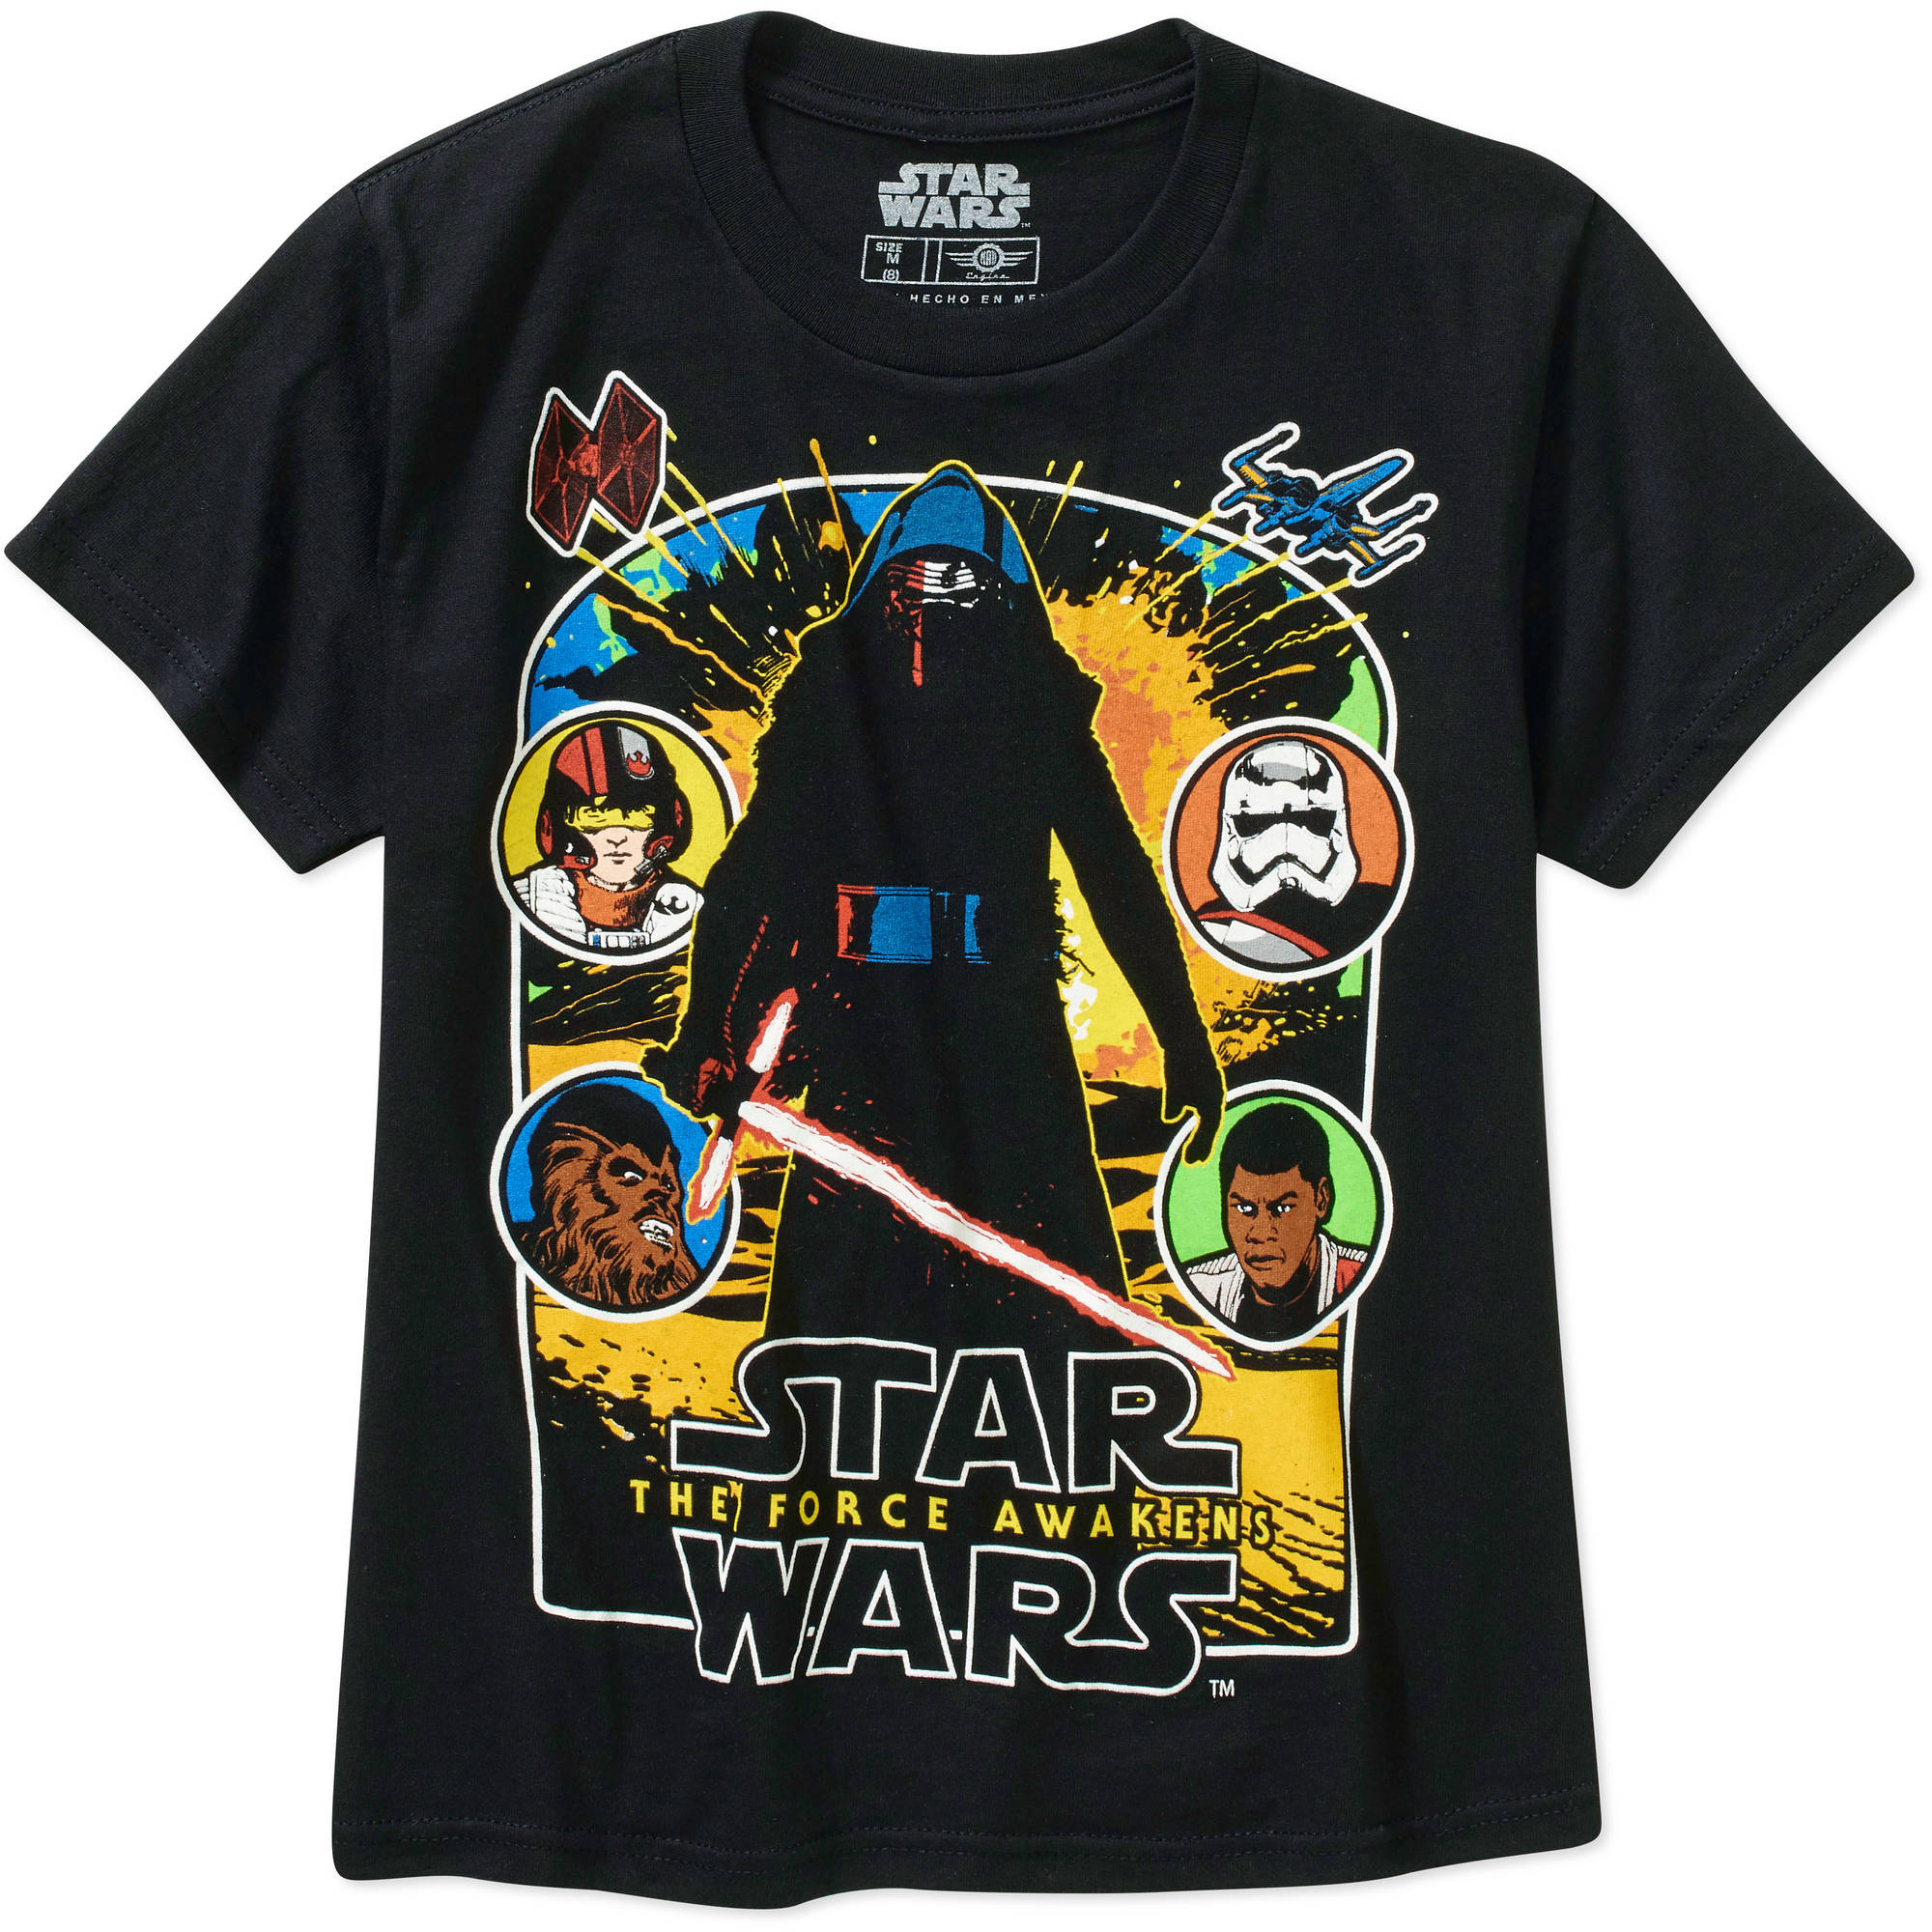 Star Wars The Force Awakens By The Light Big Men's Graphic Tee